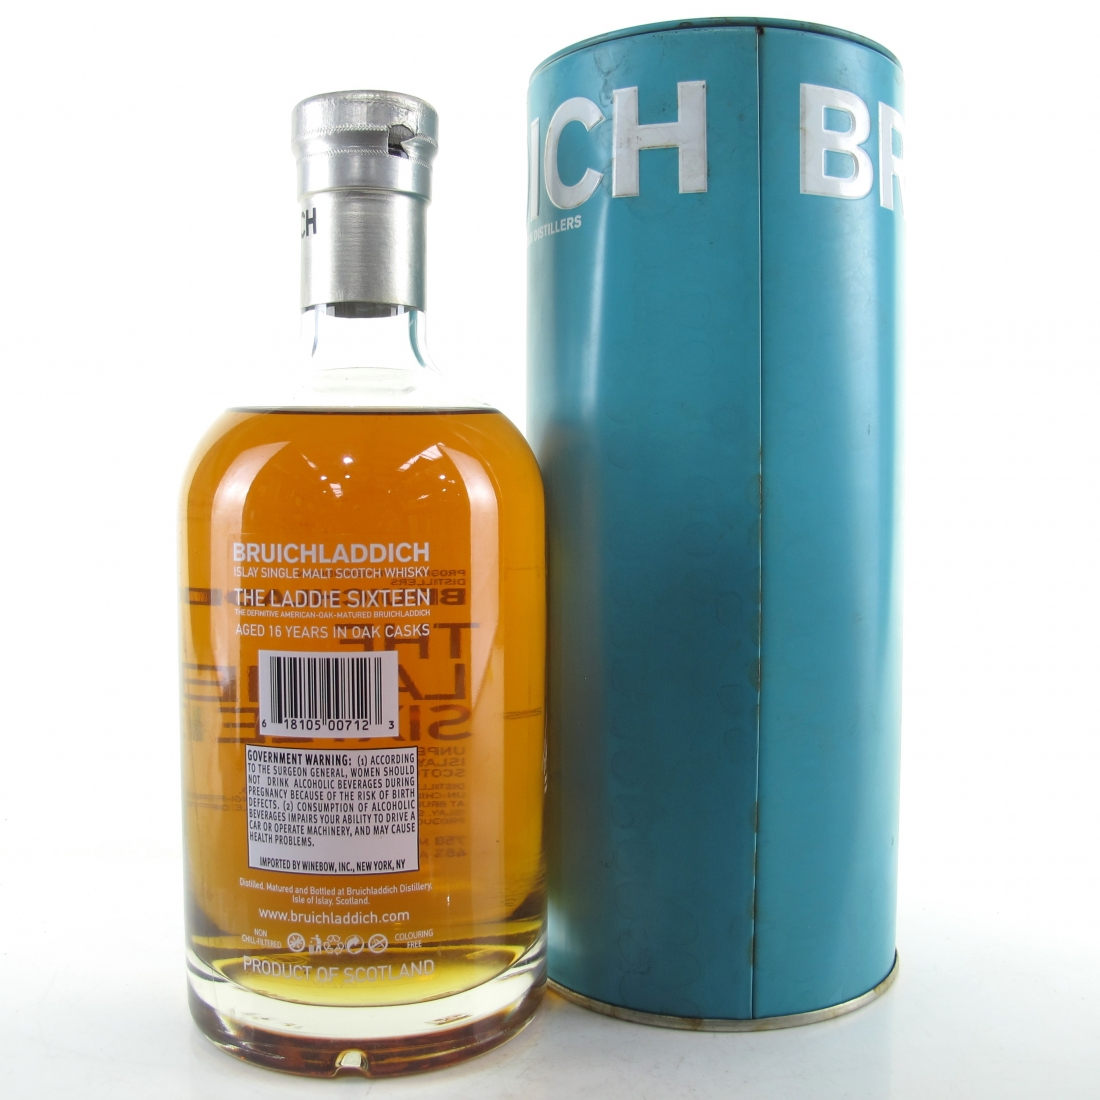 Bruichladdich The Laddie Sixteen 16 Year Old 75cl / US Import